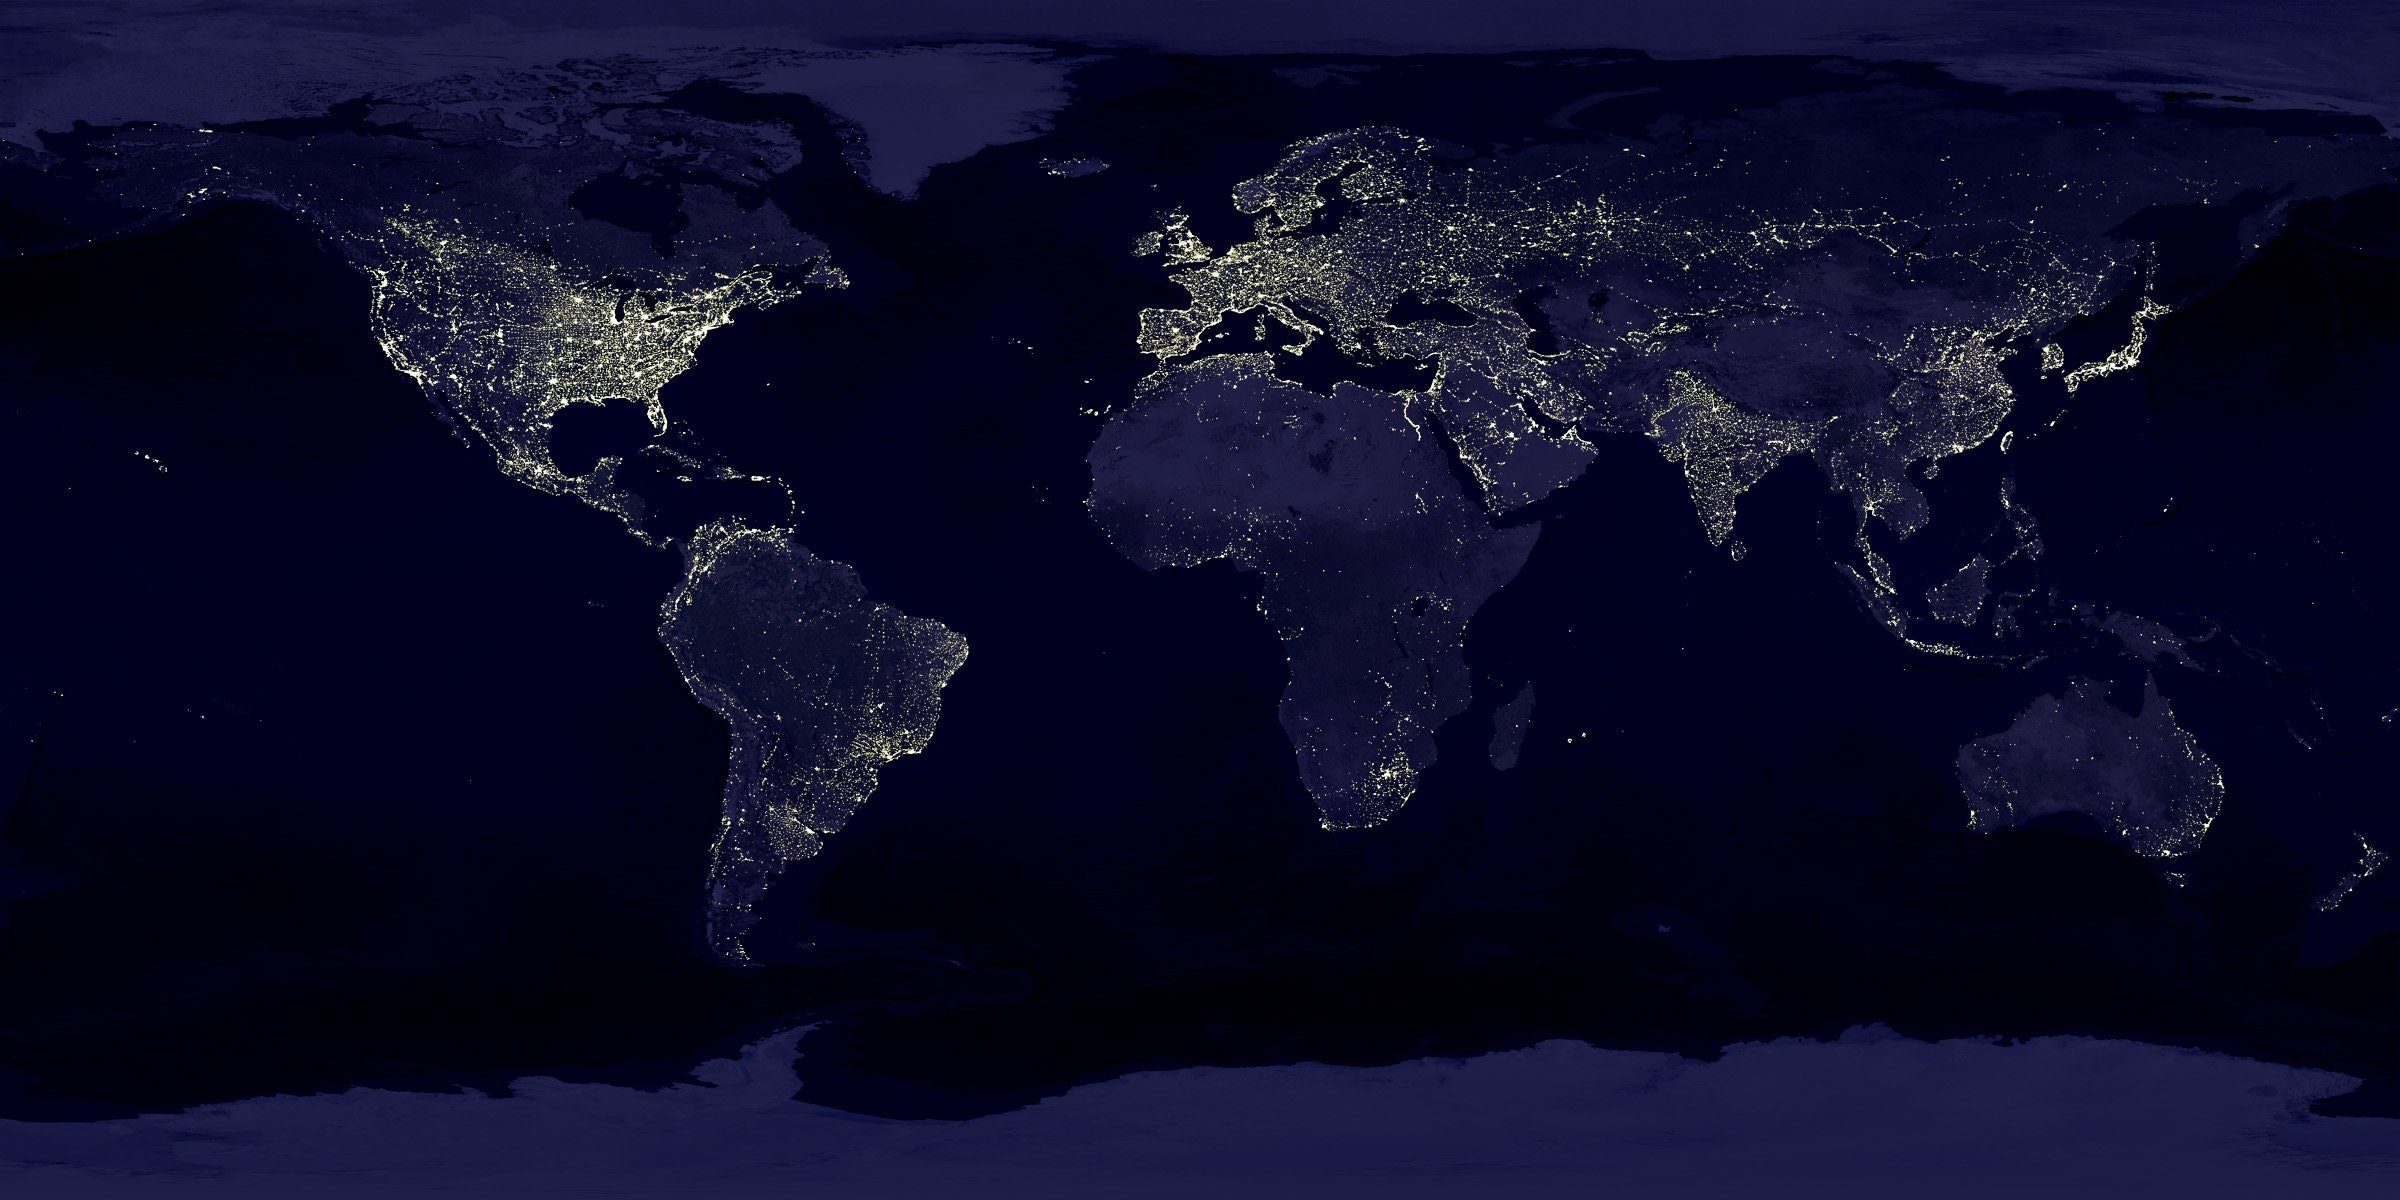 Global Network - Earth at night